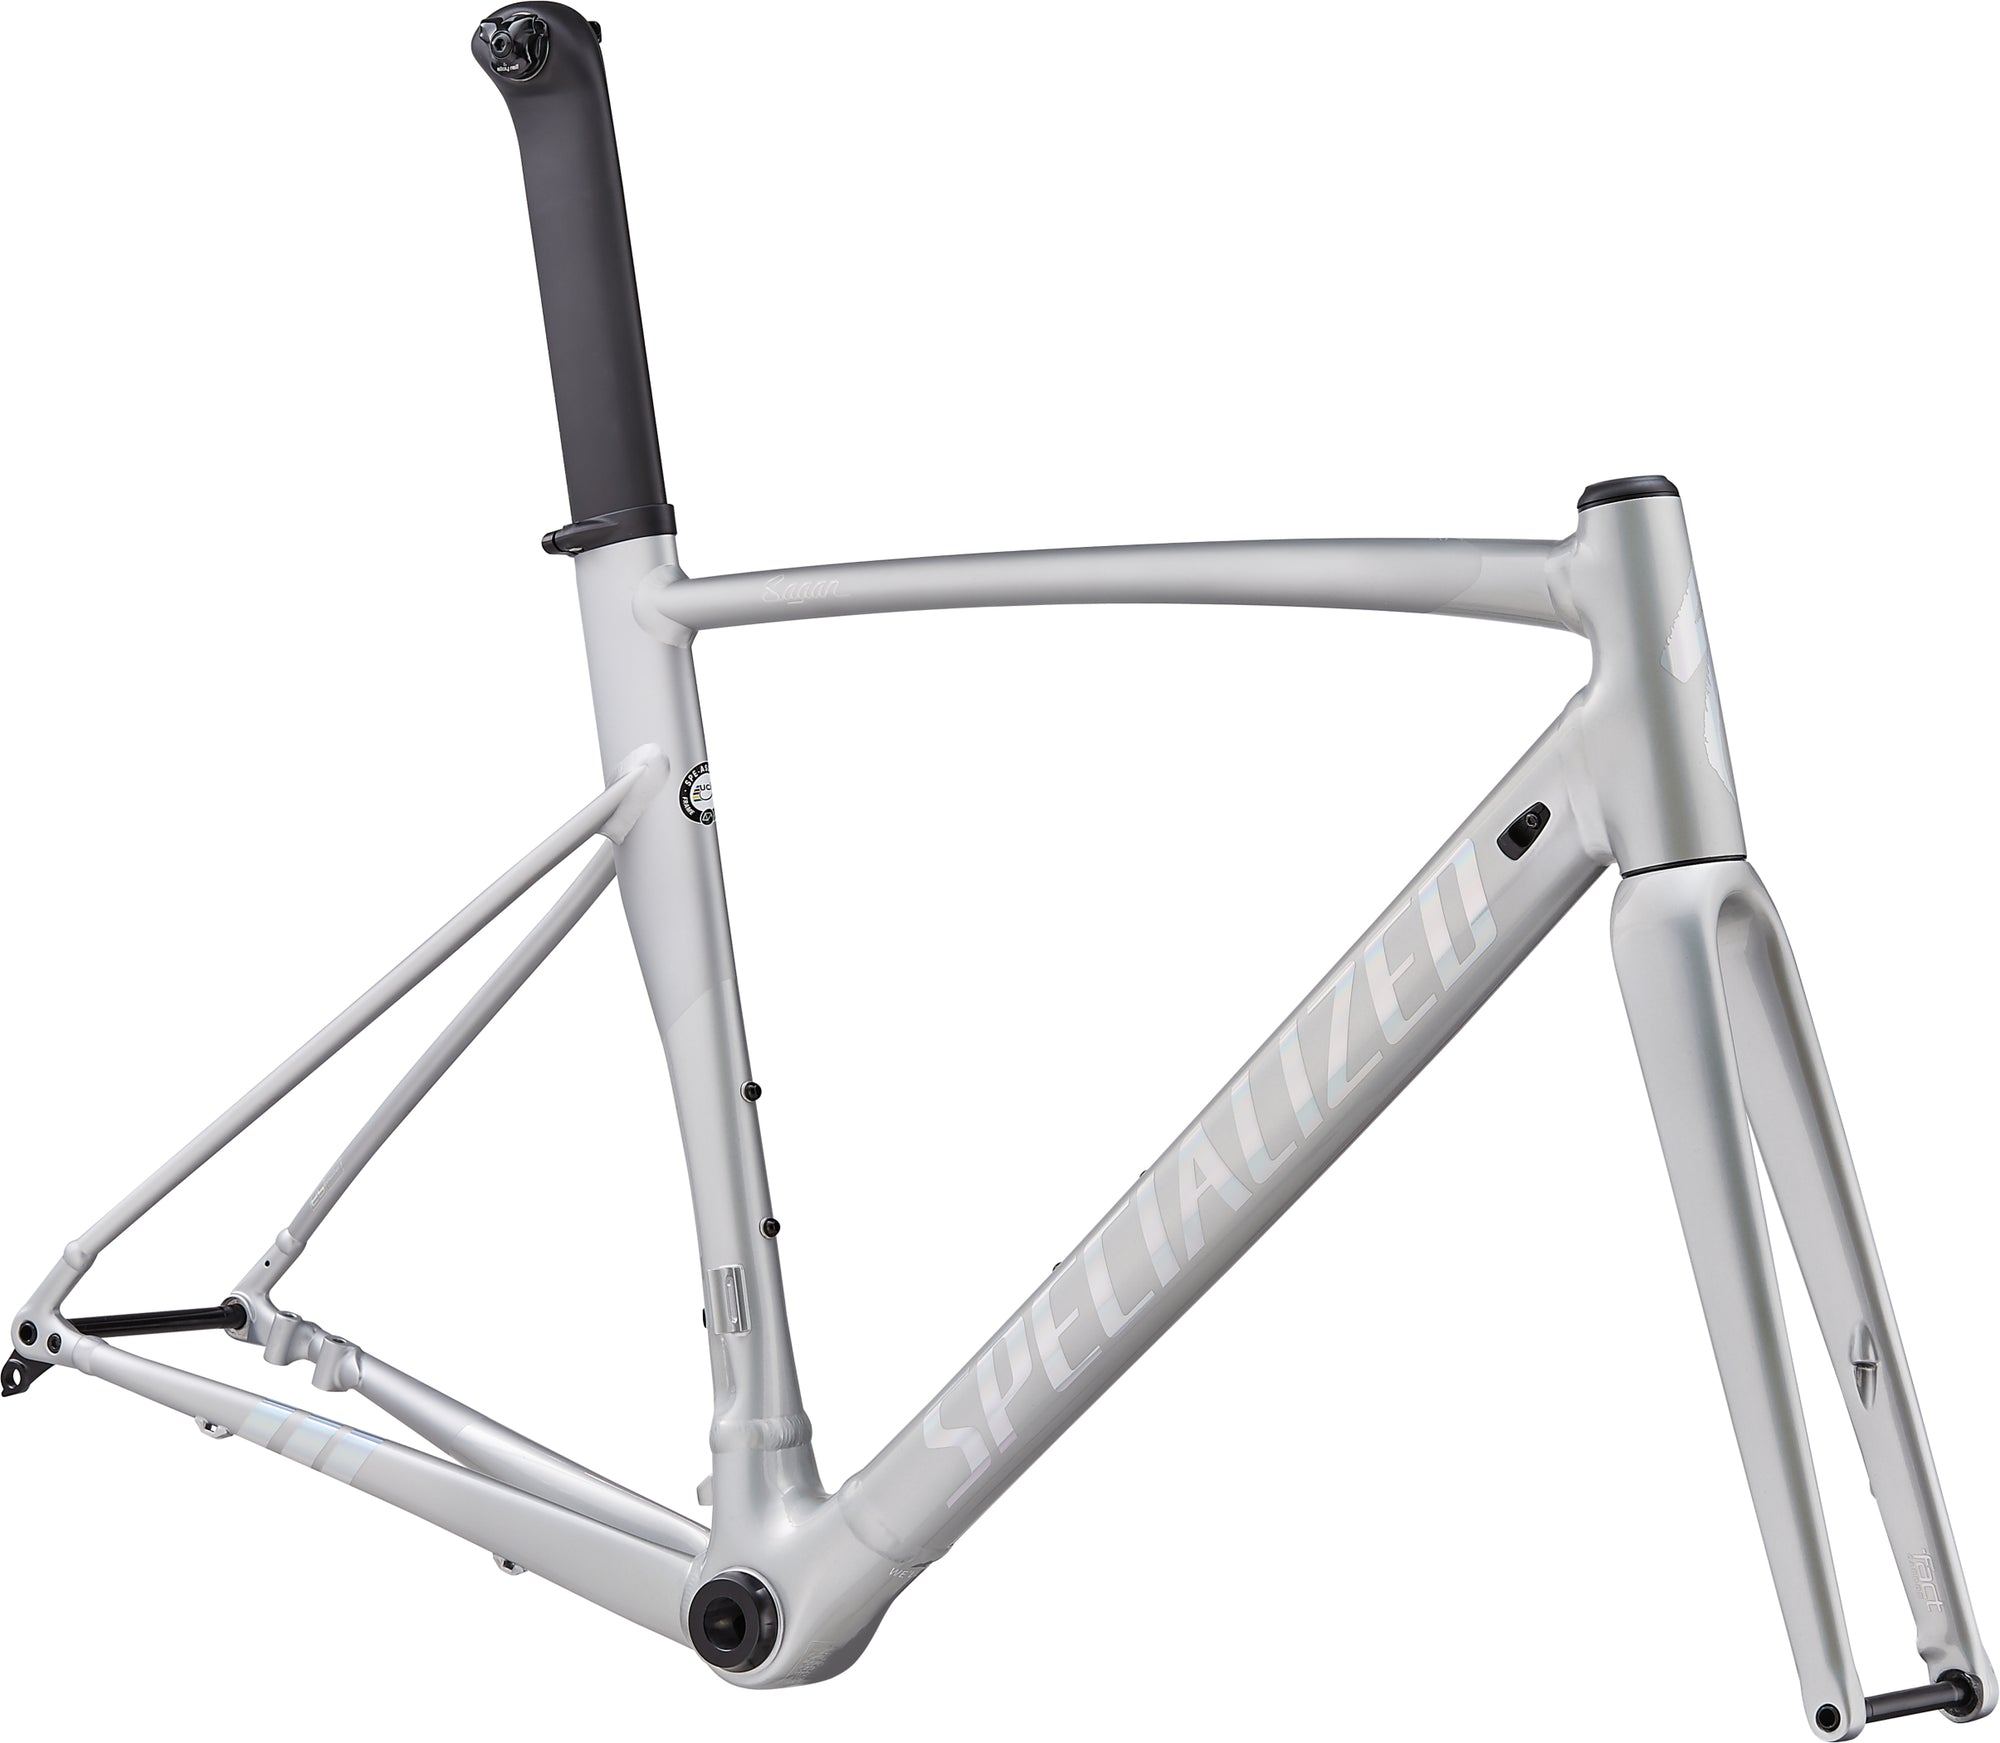 Allez Sprint Disc Frameset - Sagan Collection Overexposed LTD